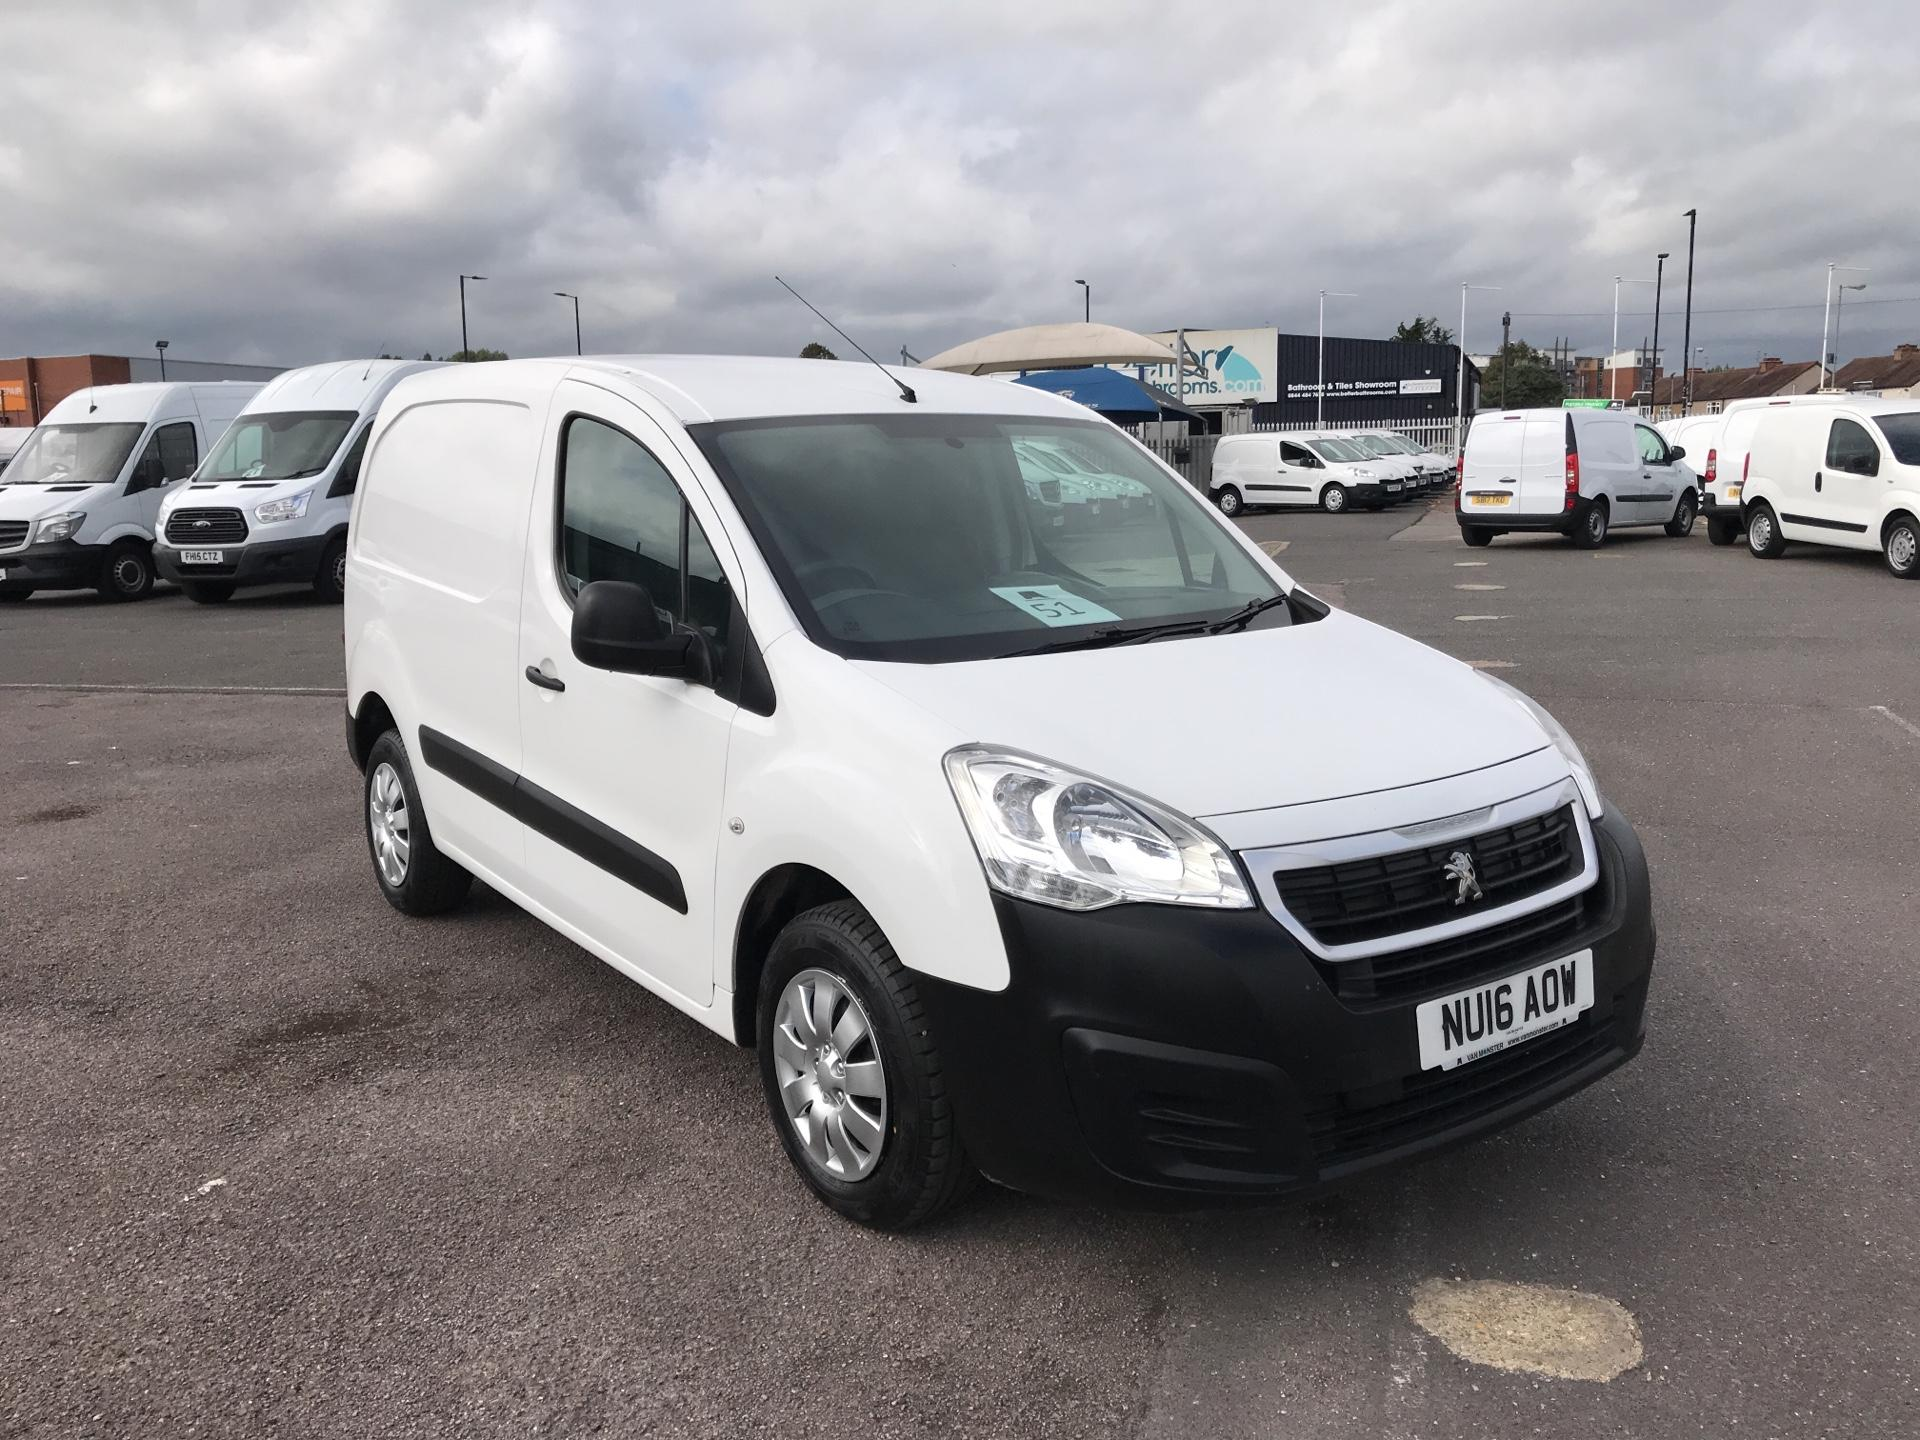 2016 Peugeot Partner 850 S 1.6 HDI 92PS VAN (SLD)*VALUE RANGE VEHICLE CONDITION REFLECTED IN PRICE* (NU16AOW)